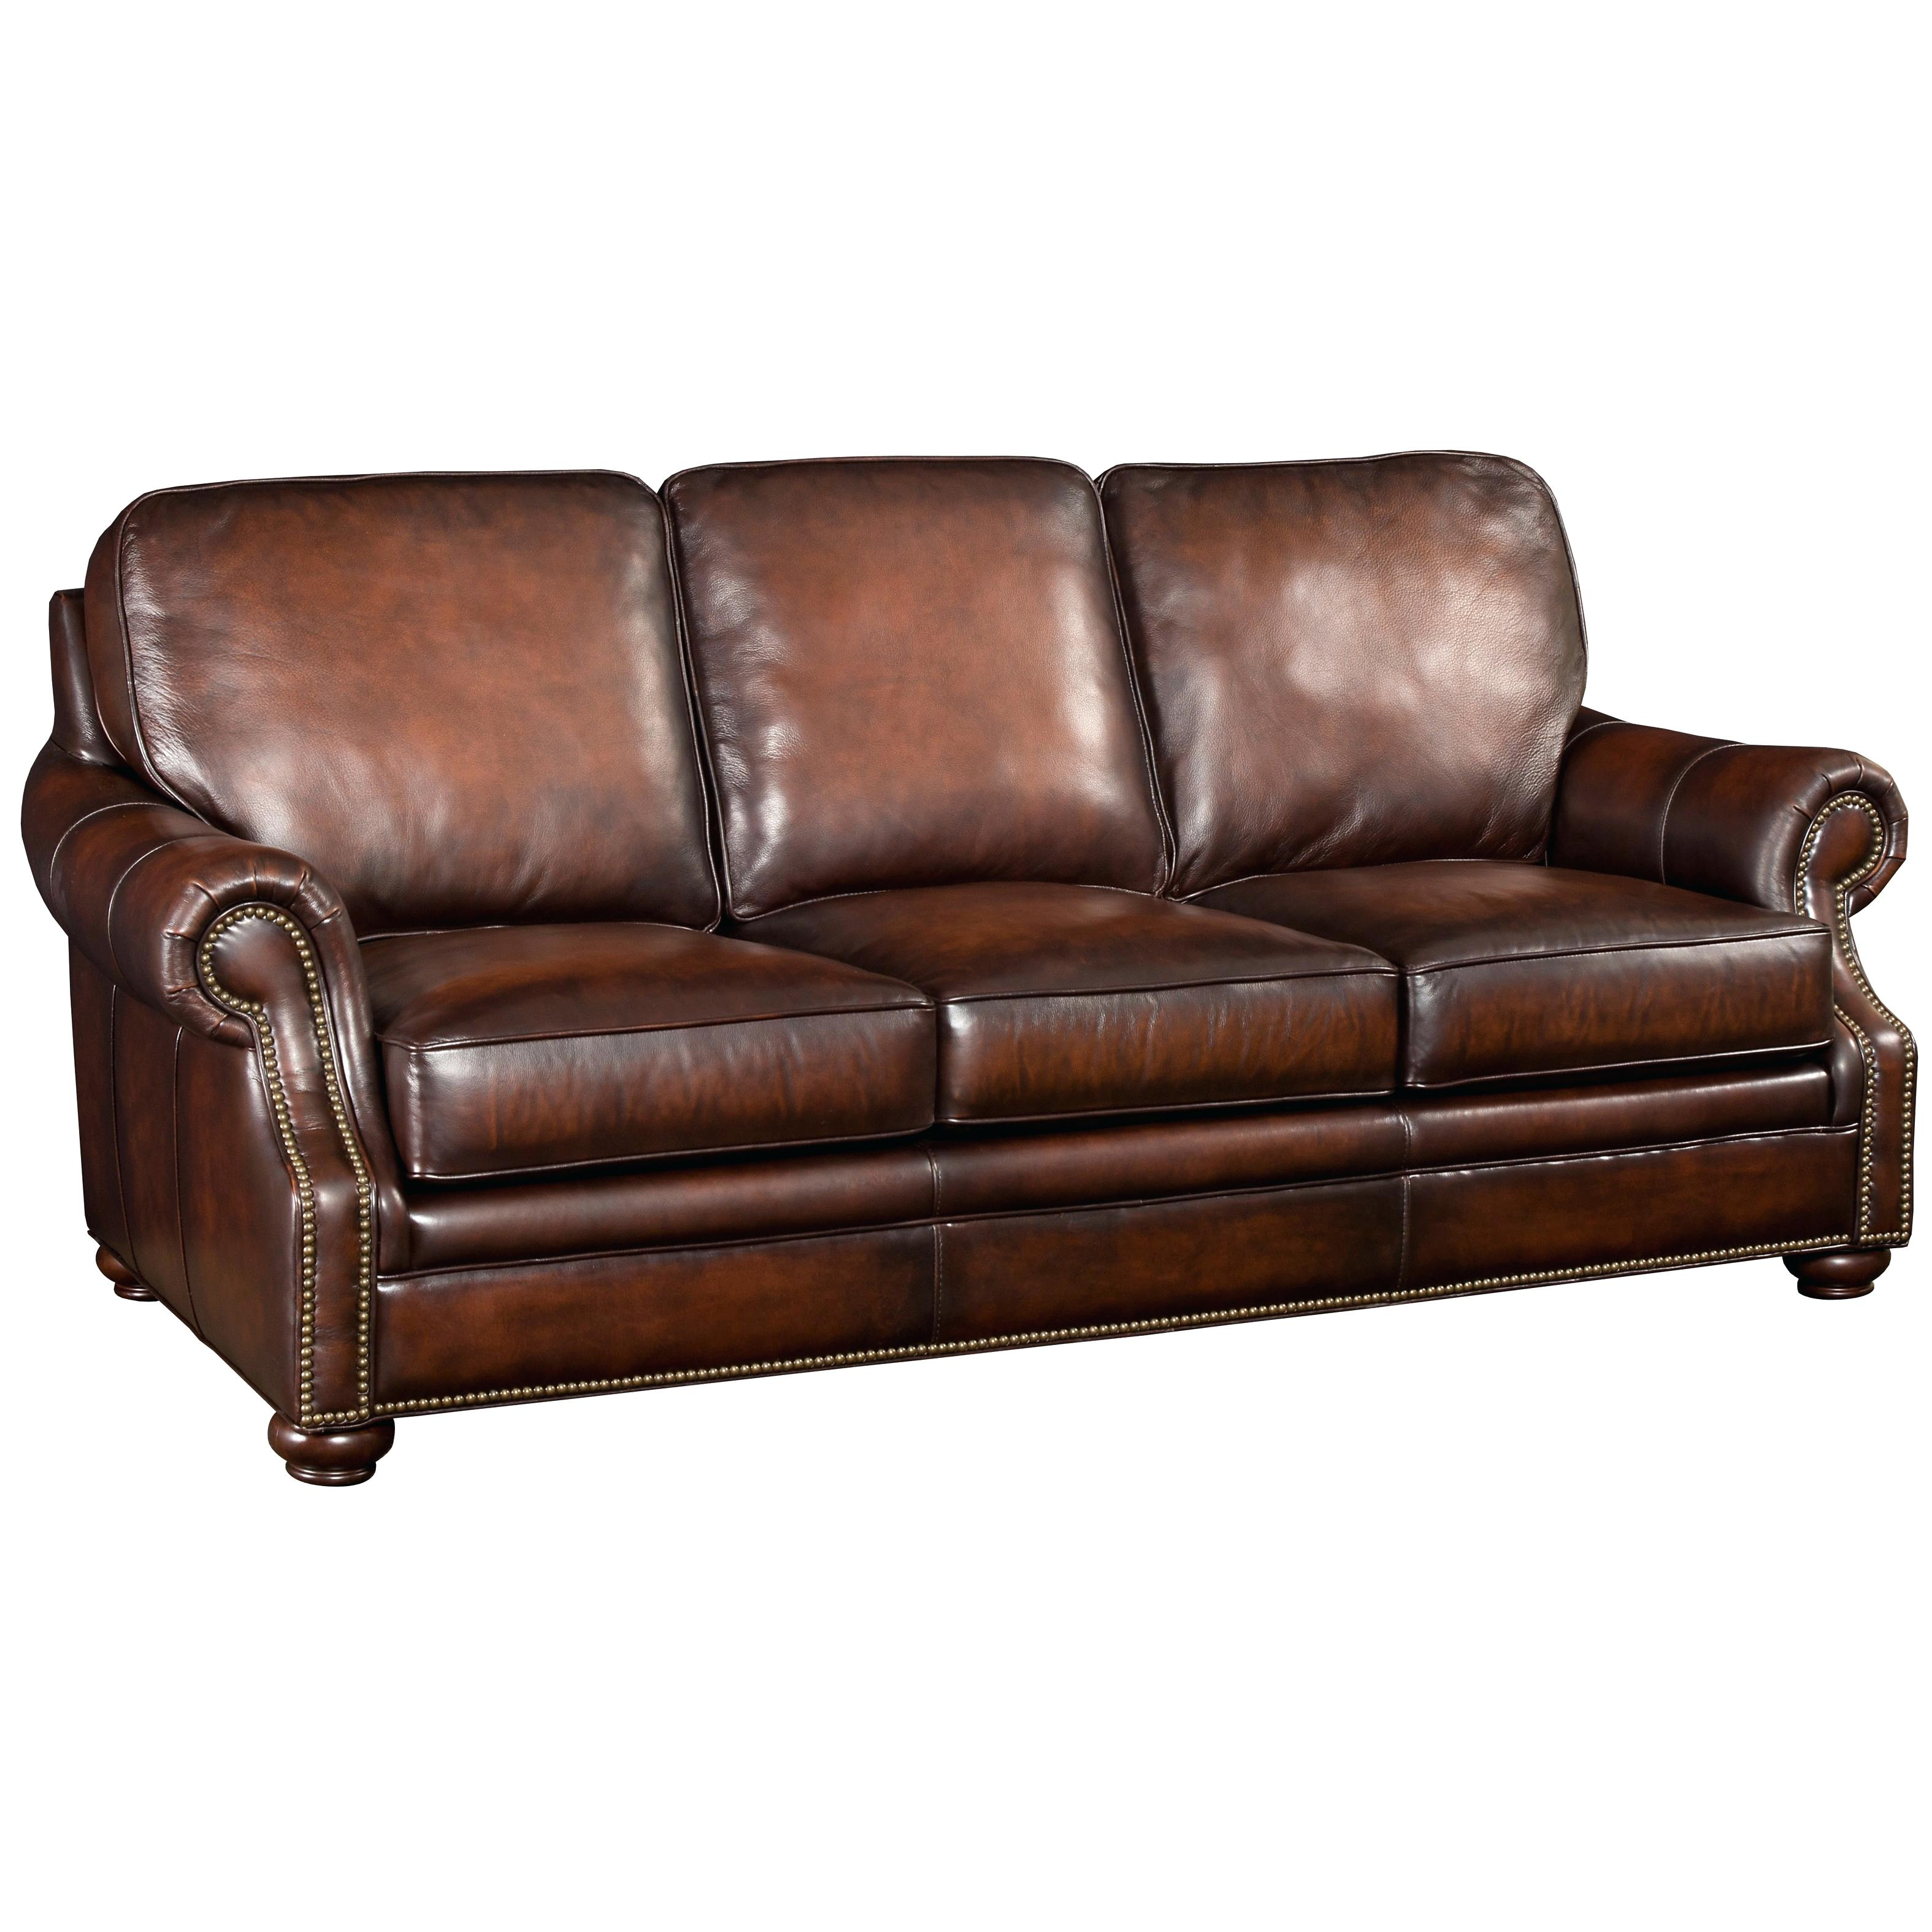 lovely curved leather sofa image-Incredible Curved Leather sofa Wallpaper